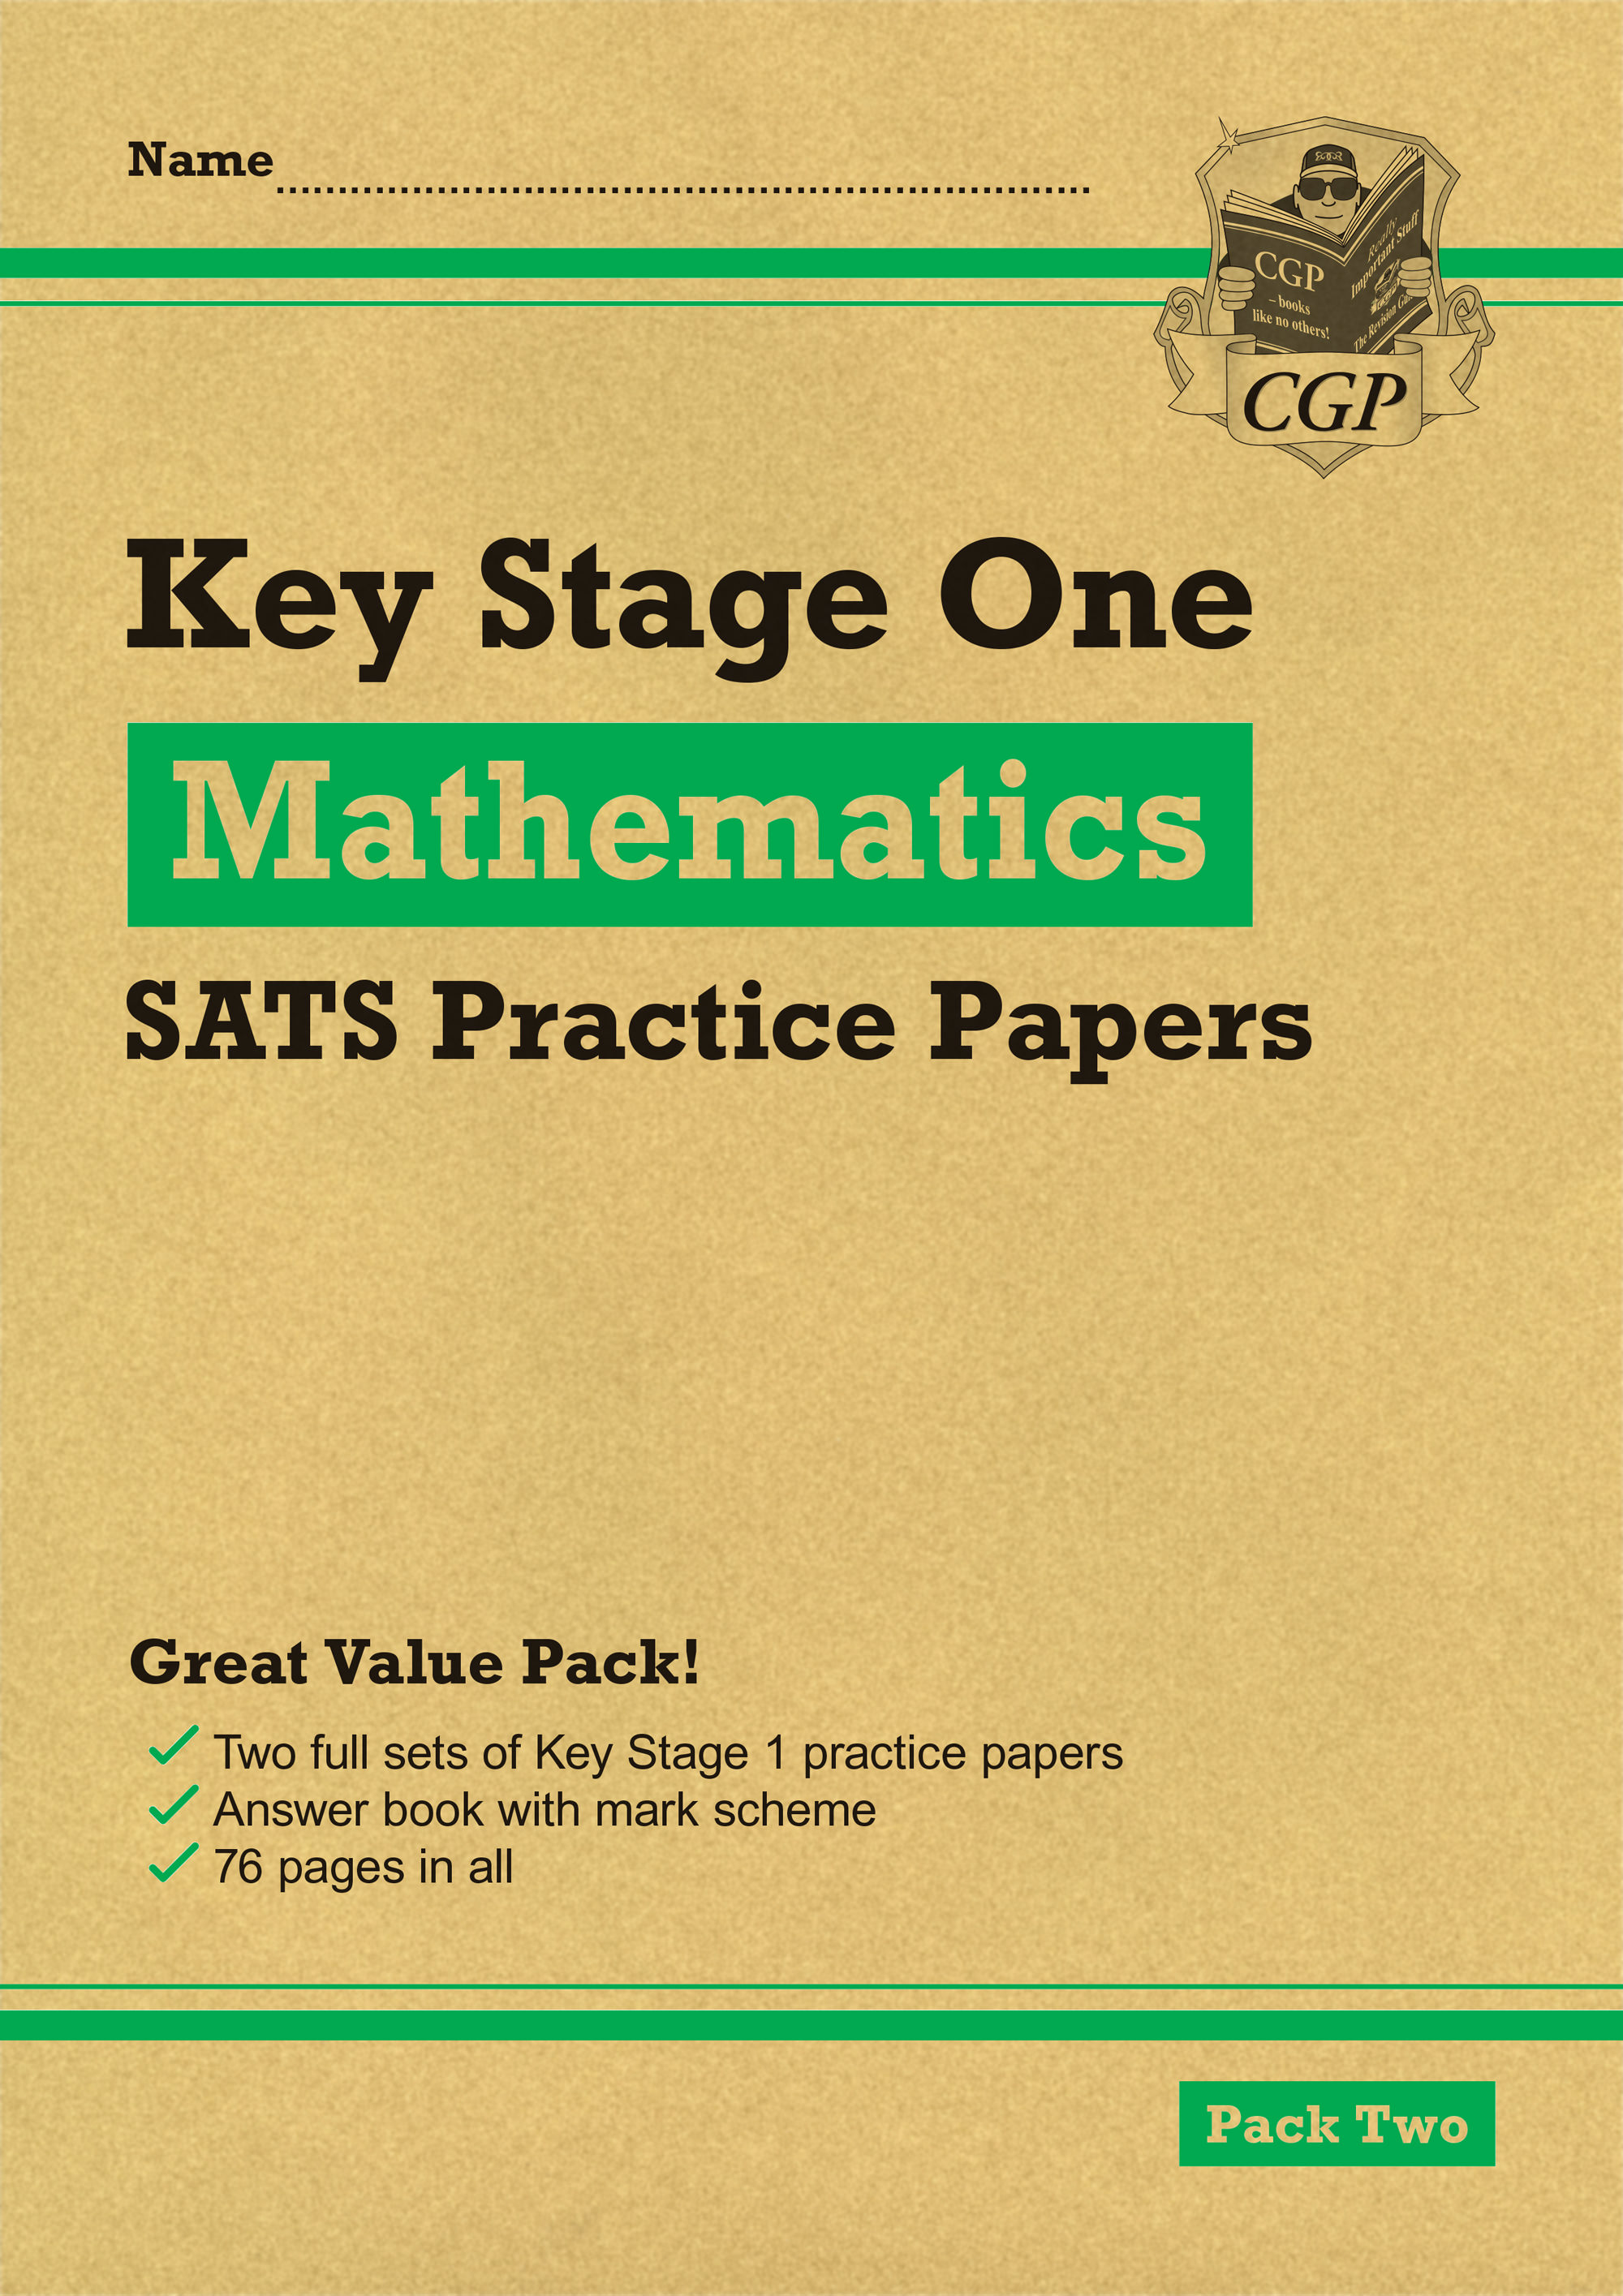 MHGP13 - KS1 Maths SATS Practice Papers: Pack 2 (for the 2021 tests)